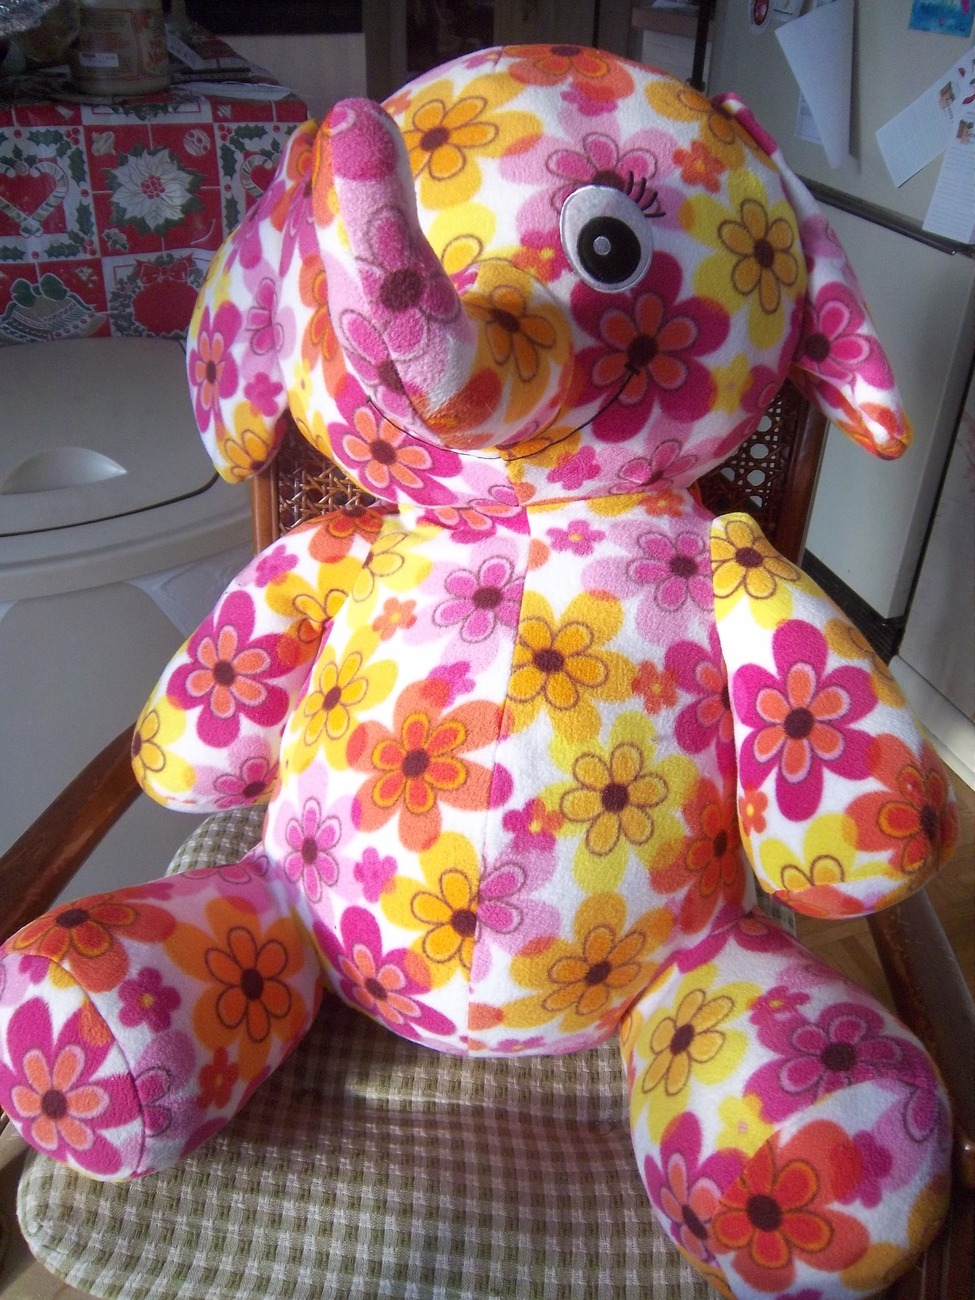 Large Stuffed Elephant from Toys R Us, Magnolia, Plush, Colorful, New with Tags